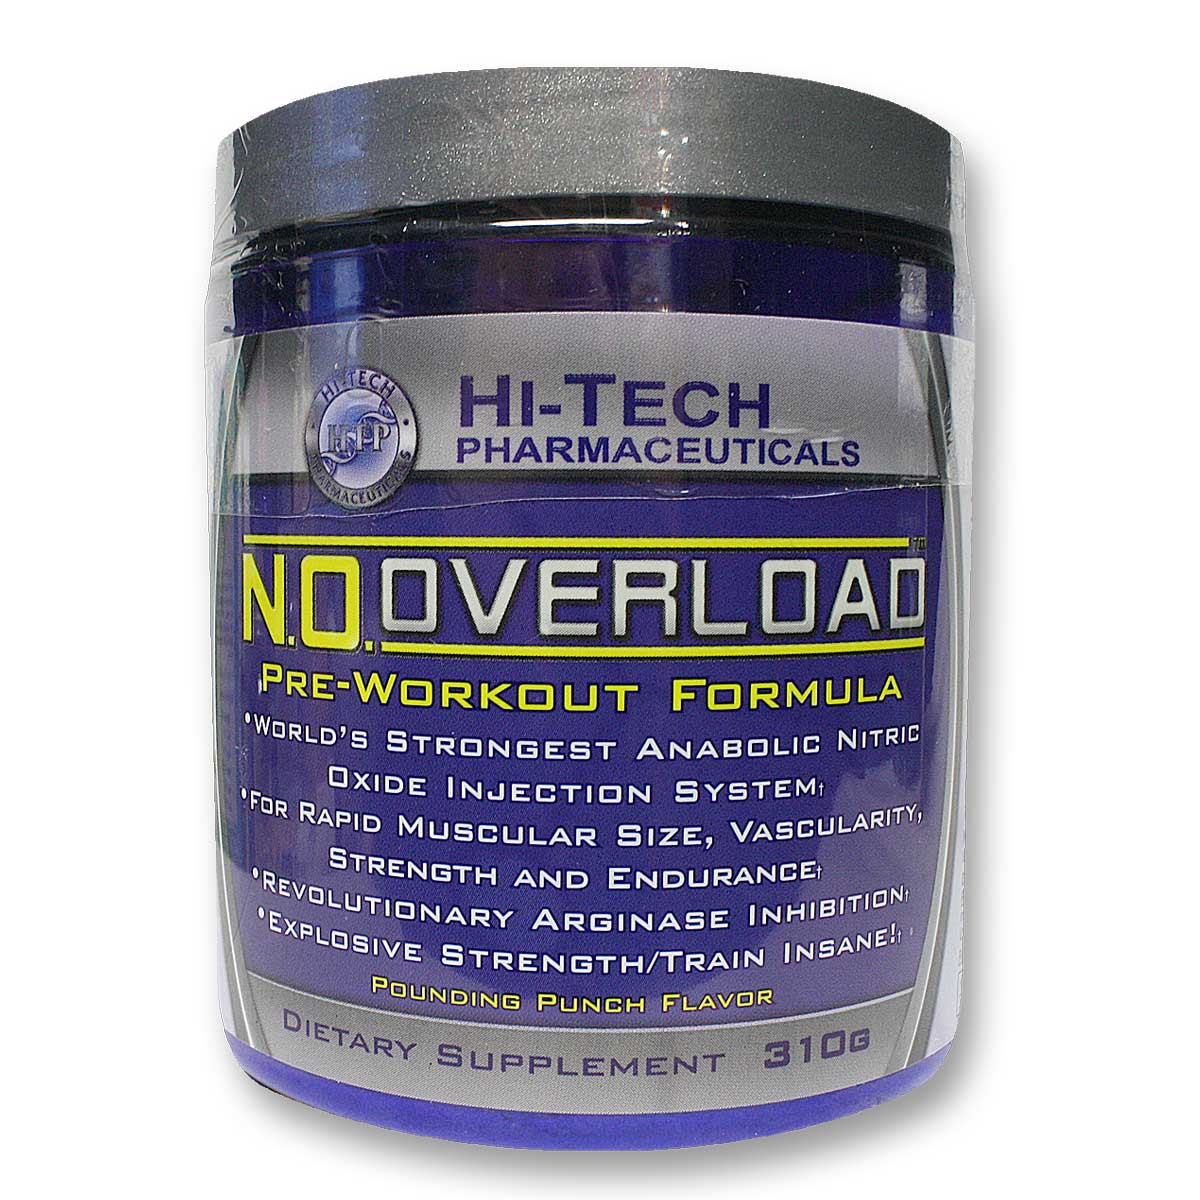 HI-TECH NO OVERLOAD